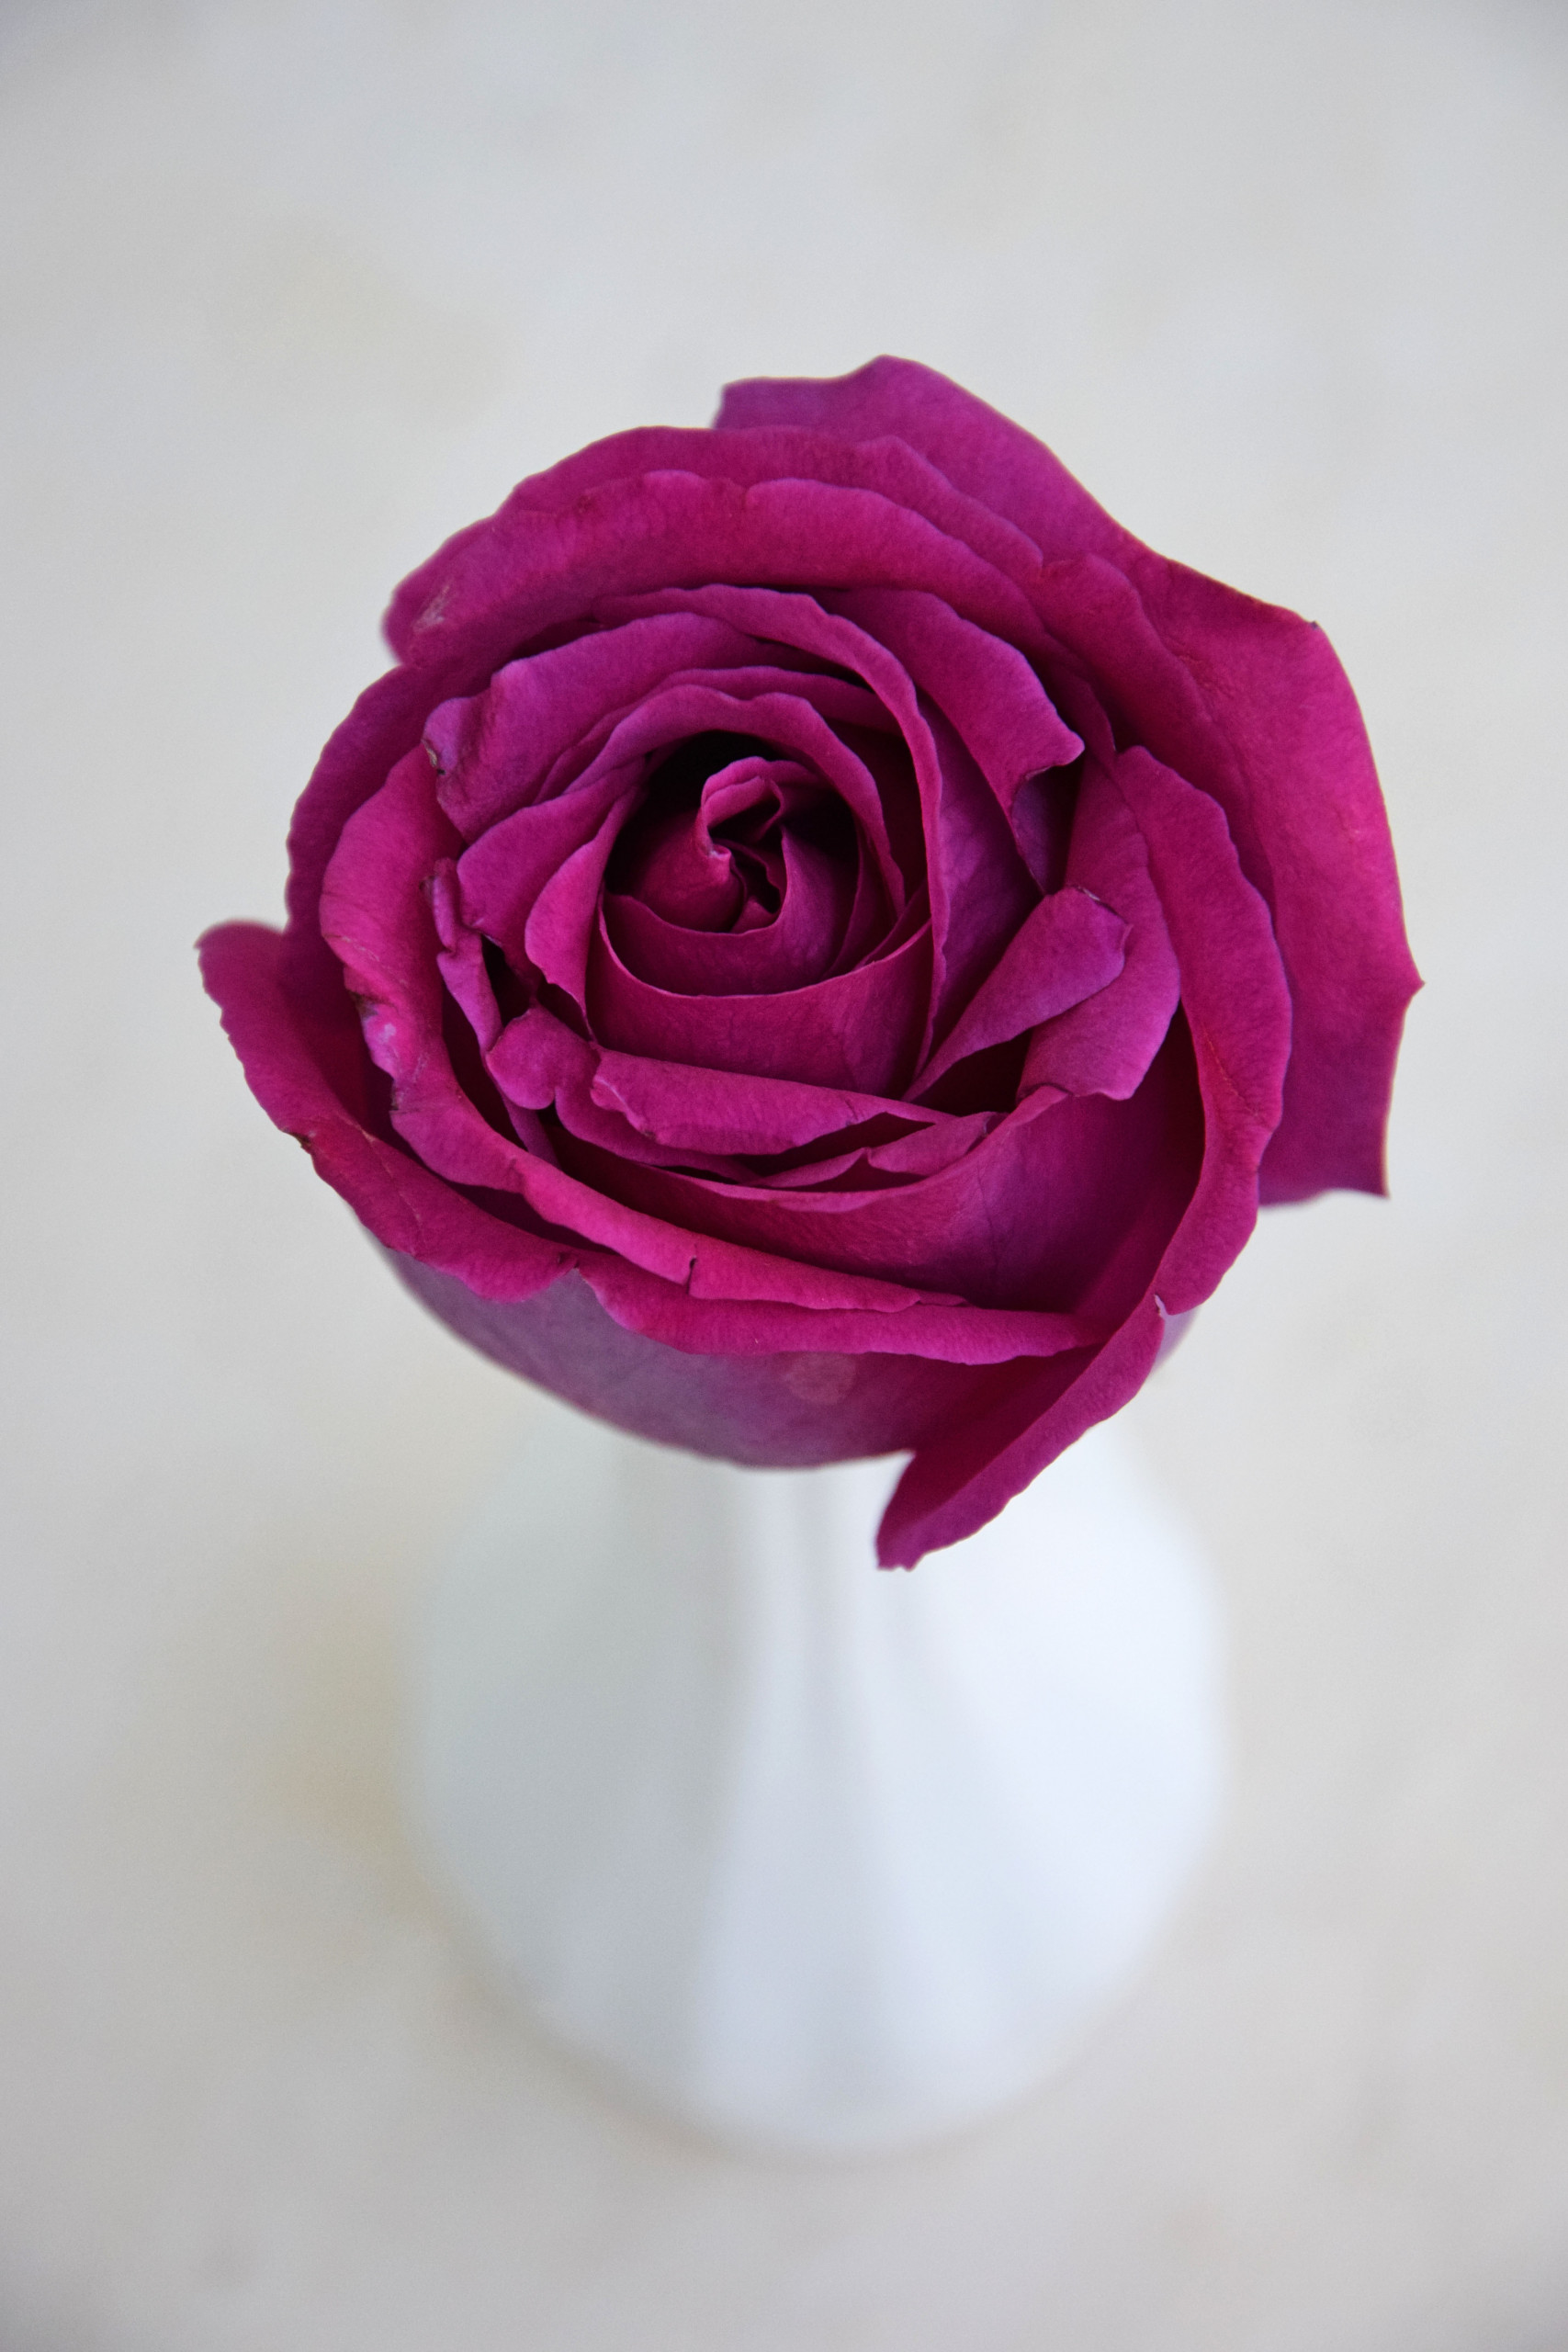 Not long ago this rose was renamed after the beautiful hotel on the Cote D'Azur: Belles Rives. Before then this rose was also known as 'Greffe de Vie' or 'Purple Perfumella'.